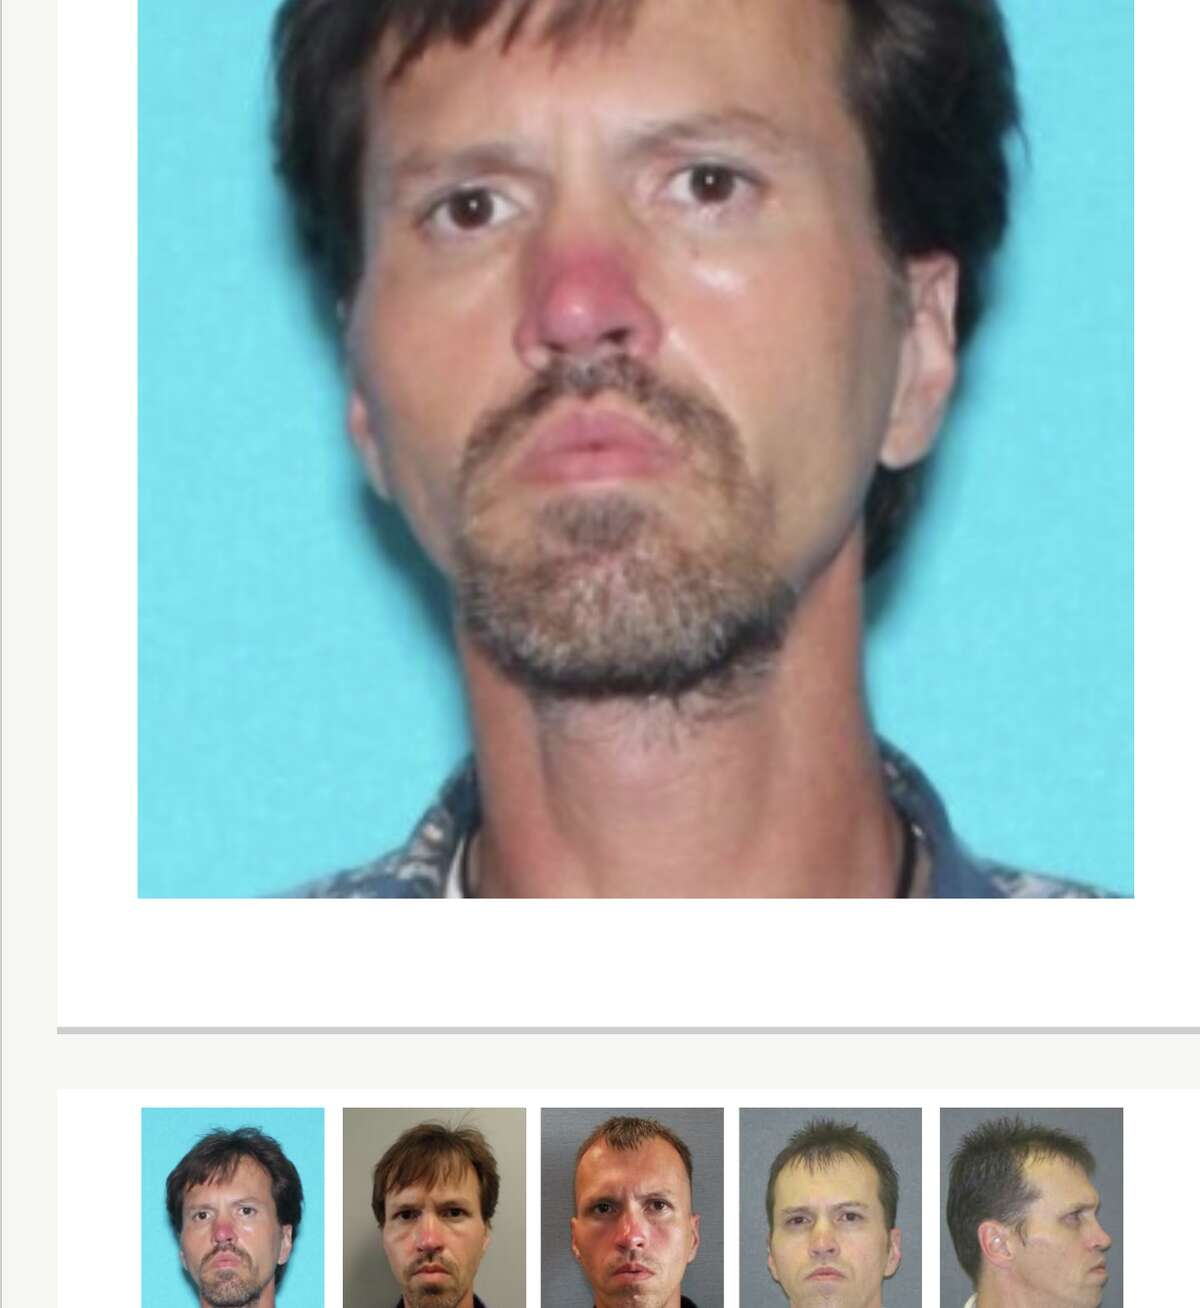 Leonard Dee Taylor Wanted for: Failure to Comply with Sex Offender Registration Requirements, Parole Violation. Original offenses:Aggravated Sexual Assault of a Child x2 Last known location: Houston Reward: Up to $8,000